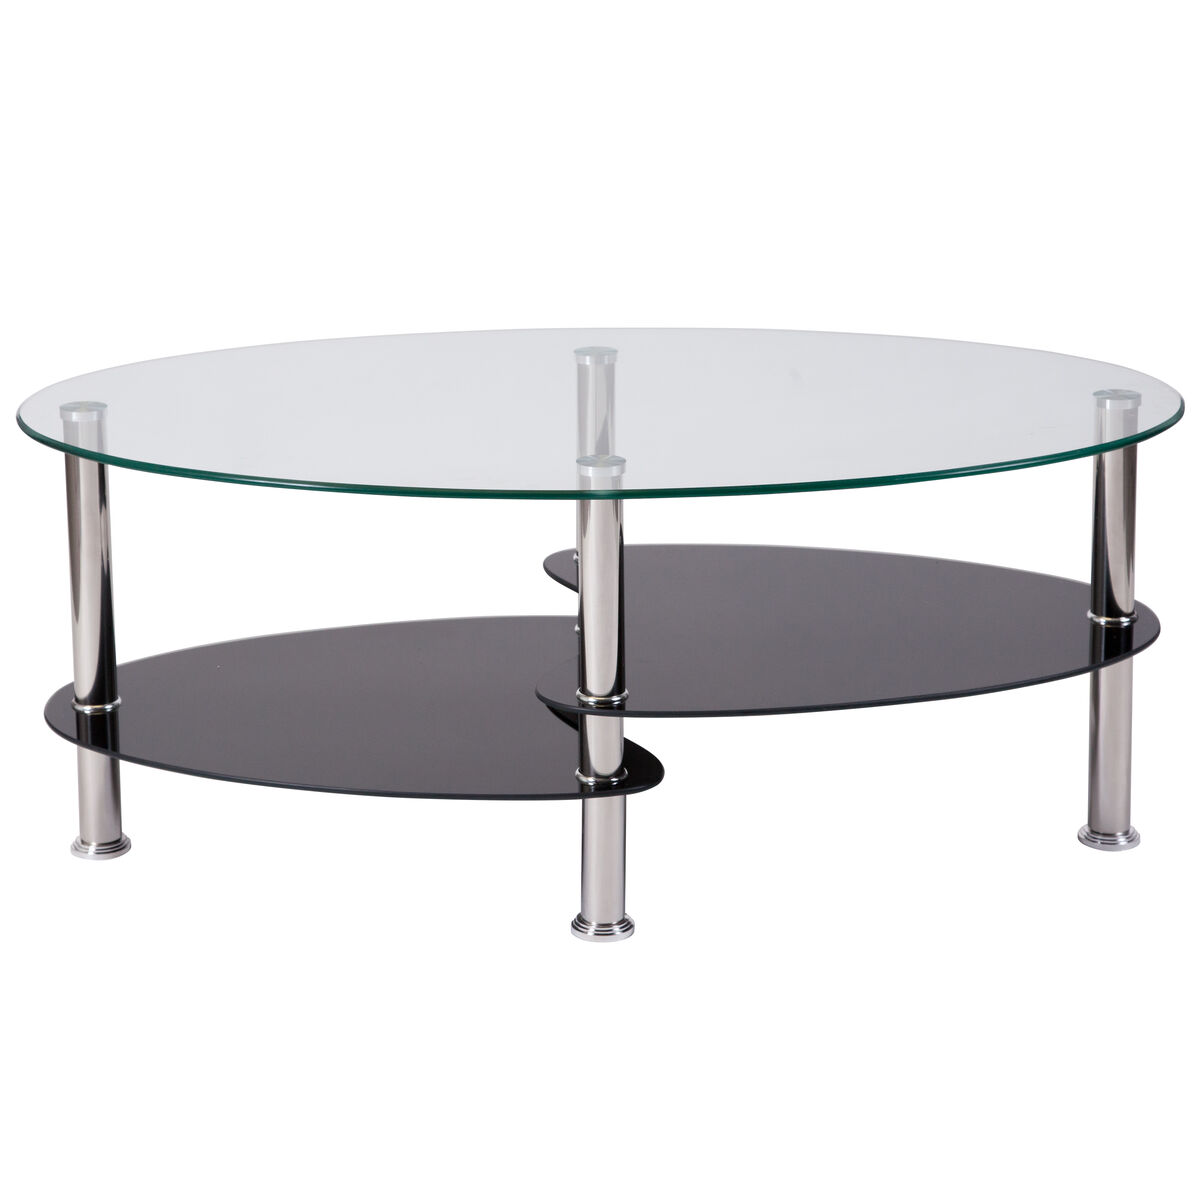 Our Hampden Glass Coffee Table With Black Shelves And Stainless Steel Legs Is On